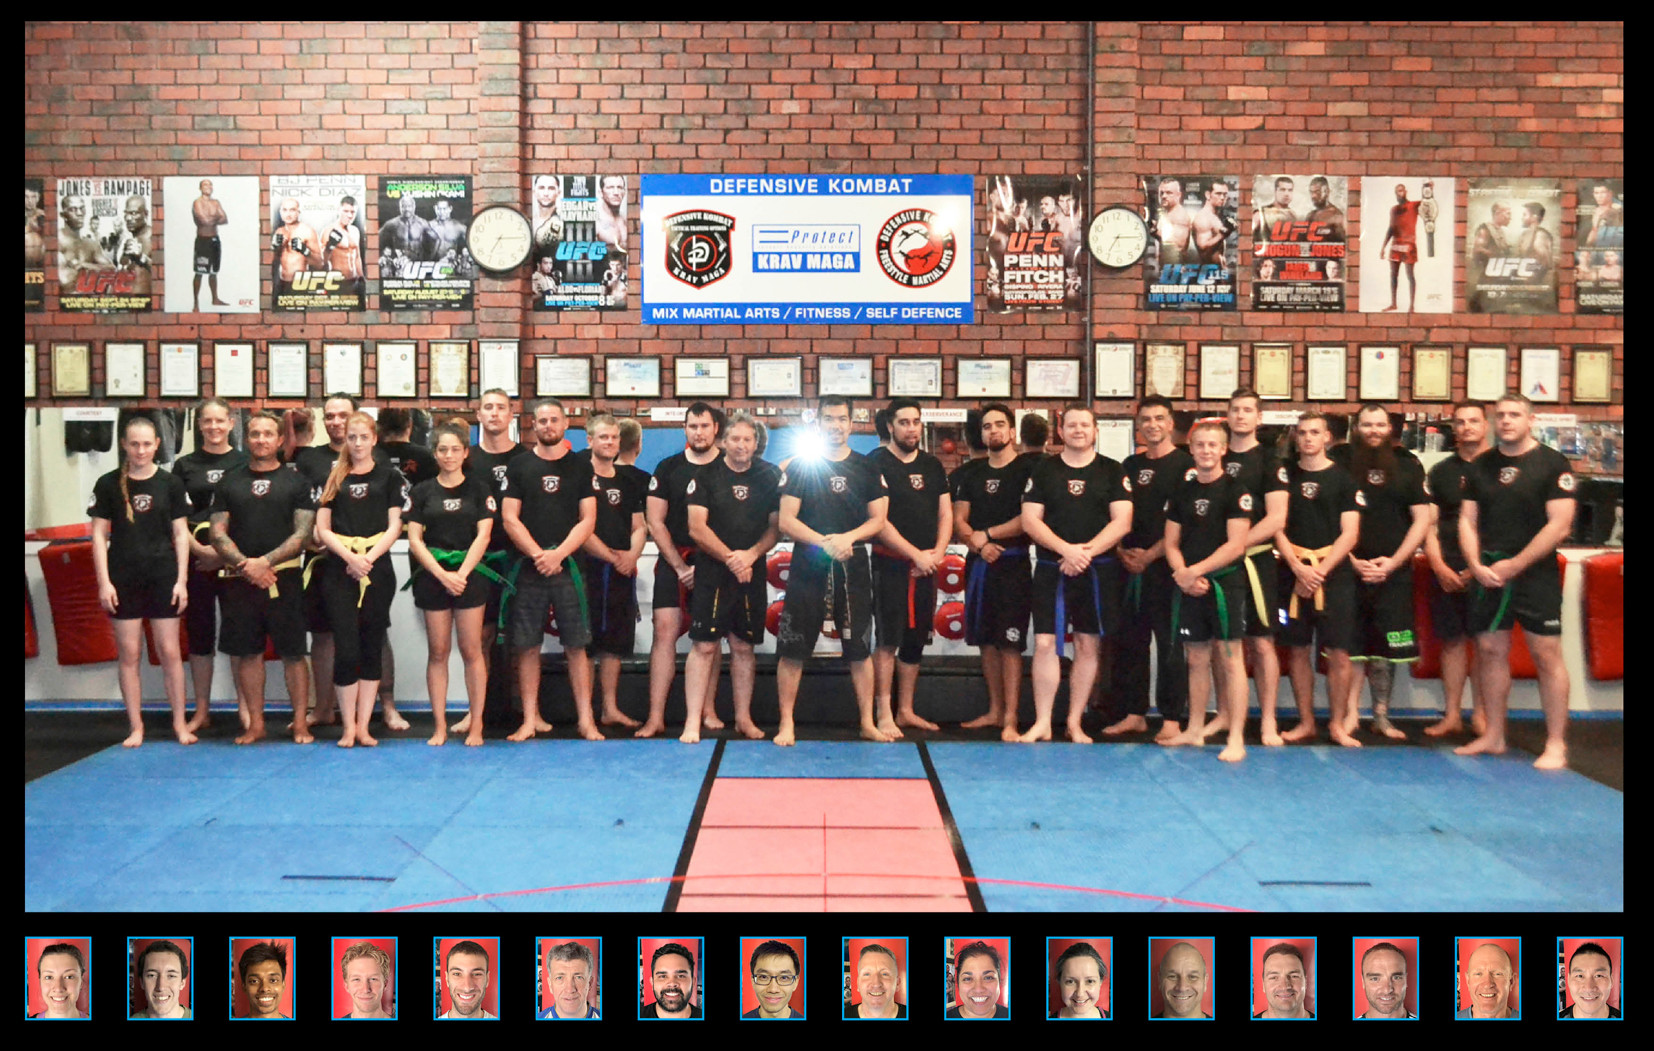 5. Krav Maga Group - April 2018.jpg